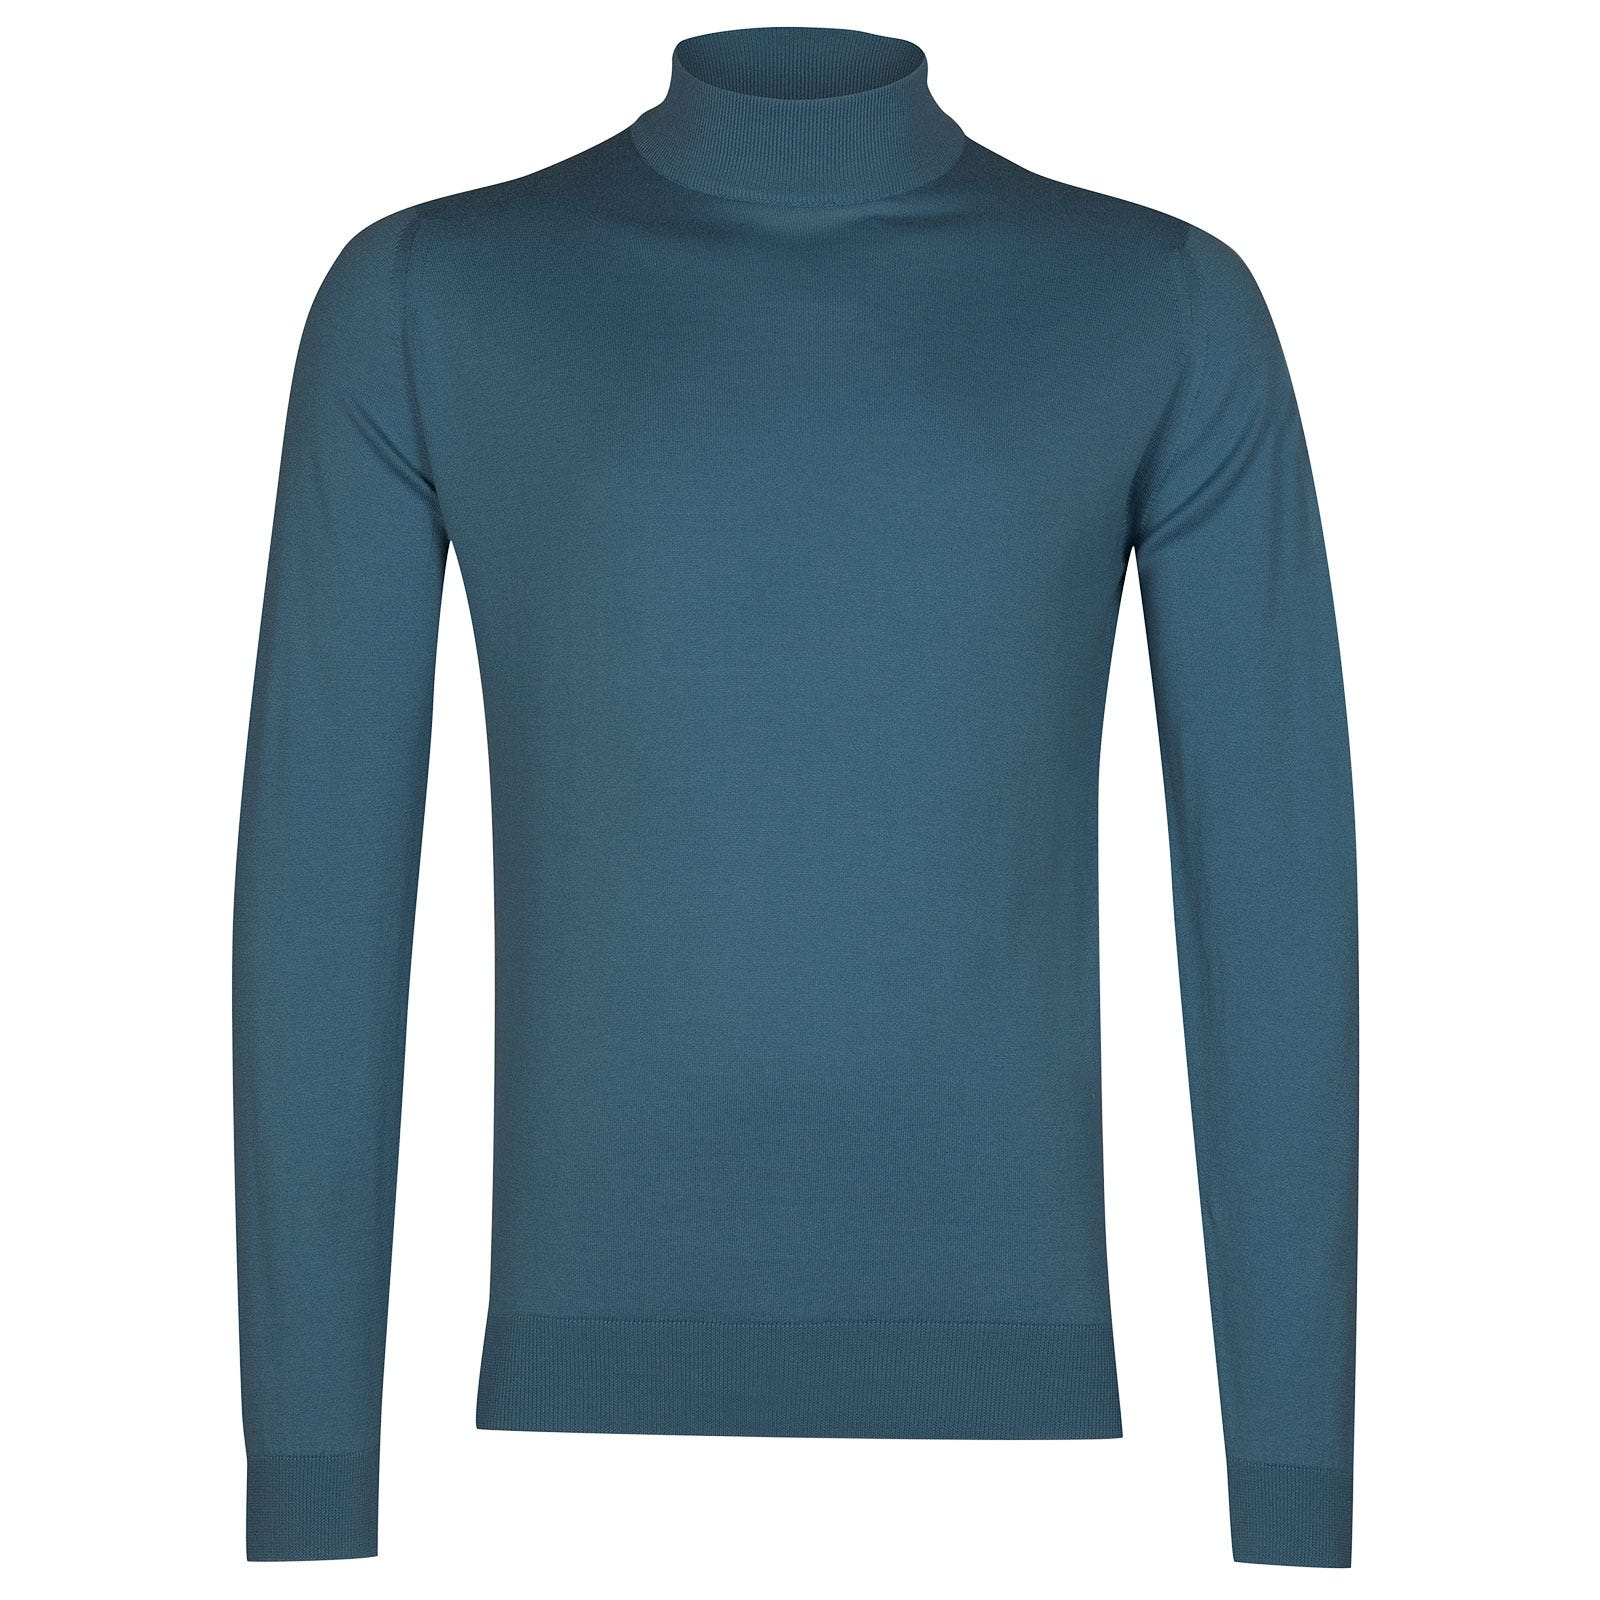 John Smedley Bradgate Sea Island Cotton Pullover in Bias Blue-S